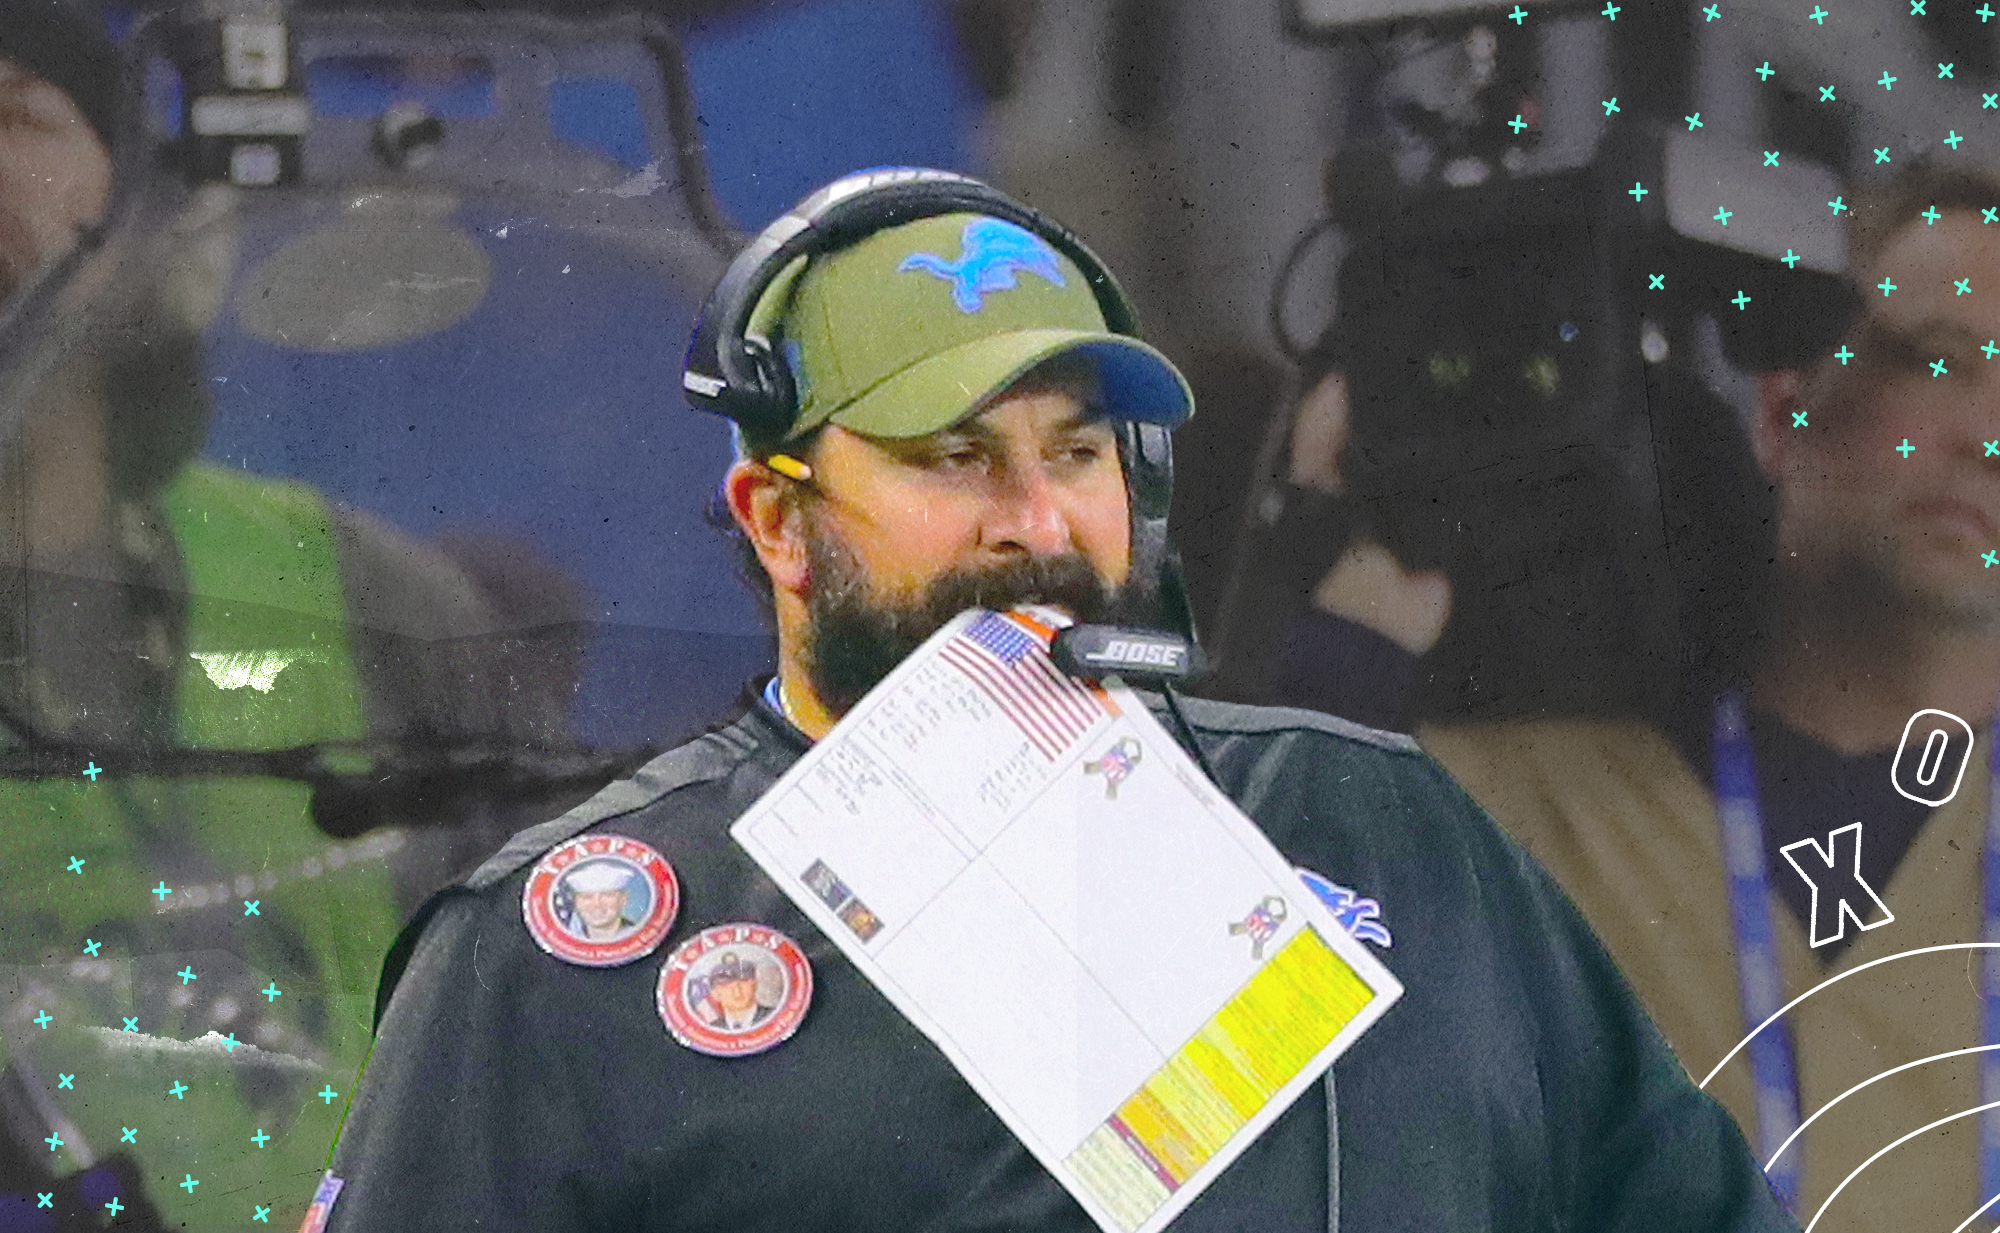 Lions coach Matt Patricia has a playsheet in his mouth, with white X's and O's and blue stars in the background